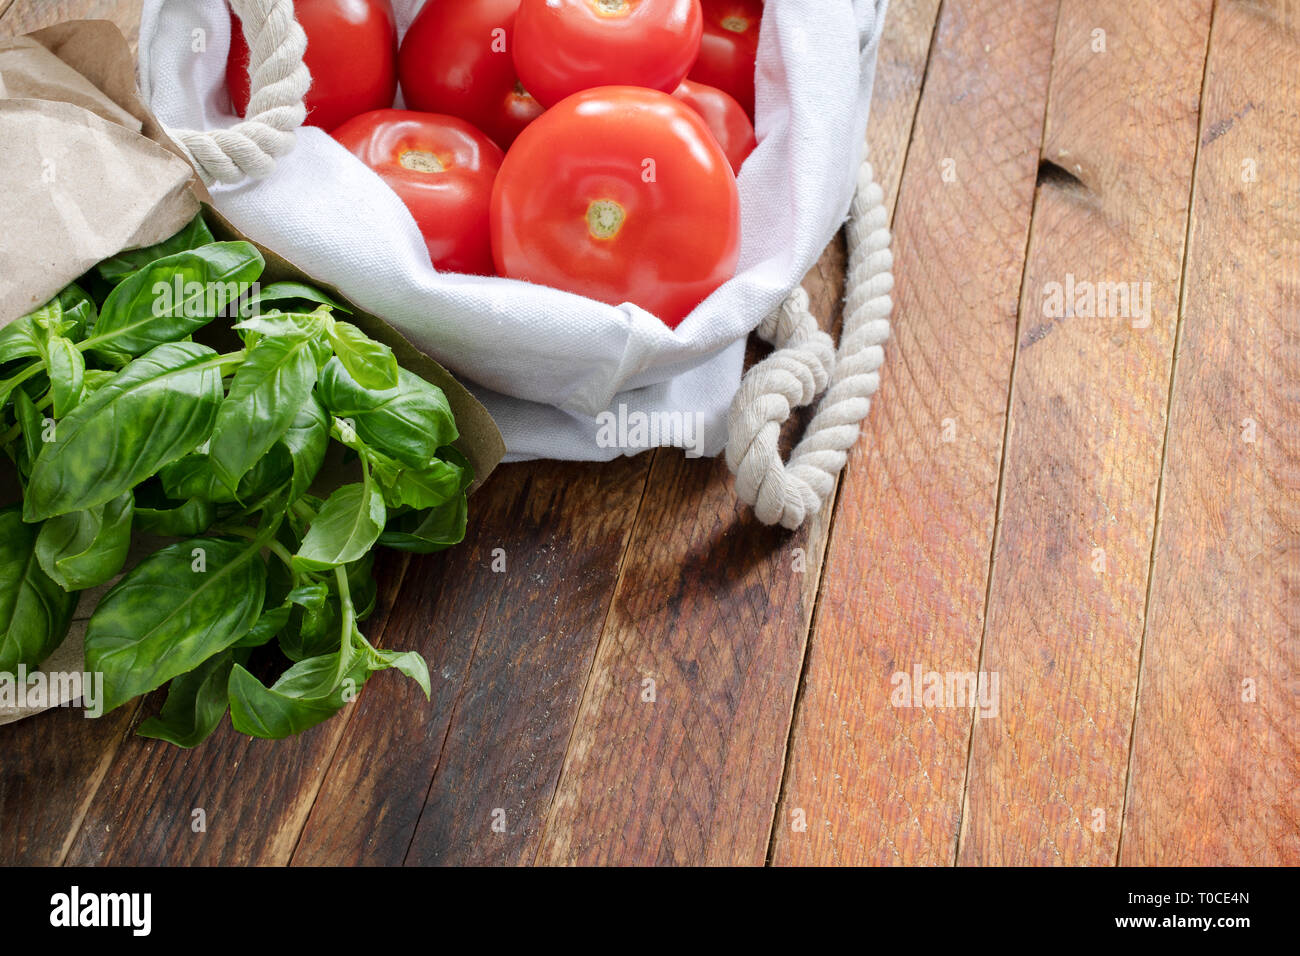 Red tomatoes and green Basil in eco-friendly packaging on wooden table. - Stock Image